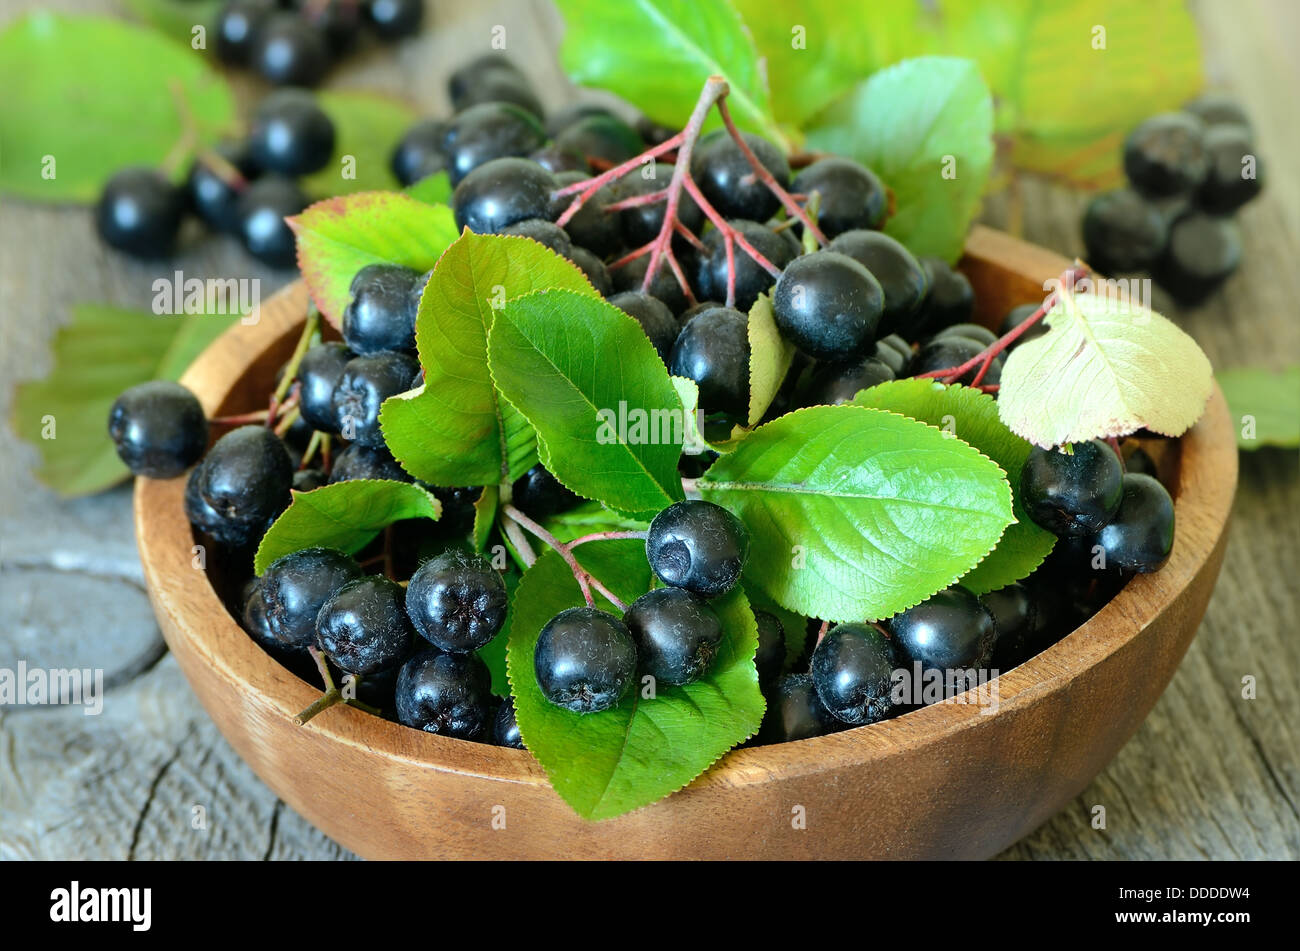 Black chokeberry in brown bowl on wooden table - Stock Image